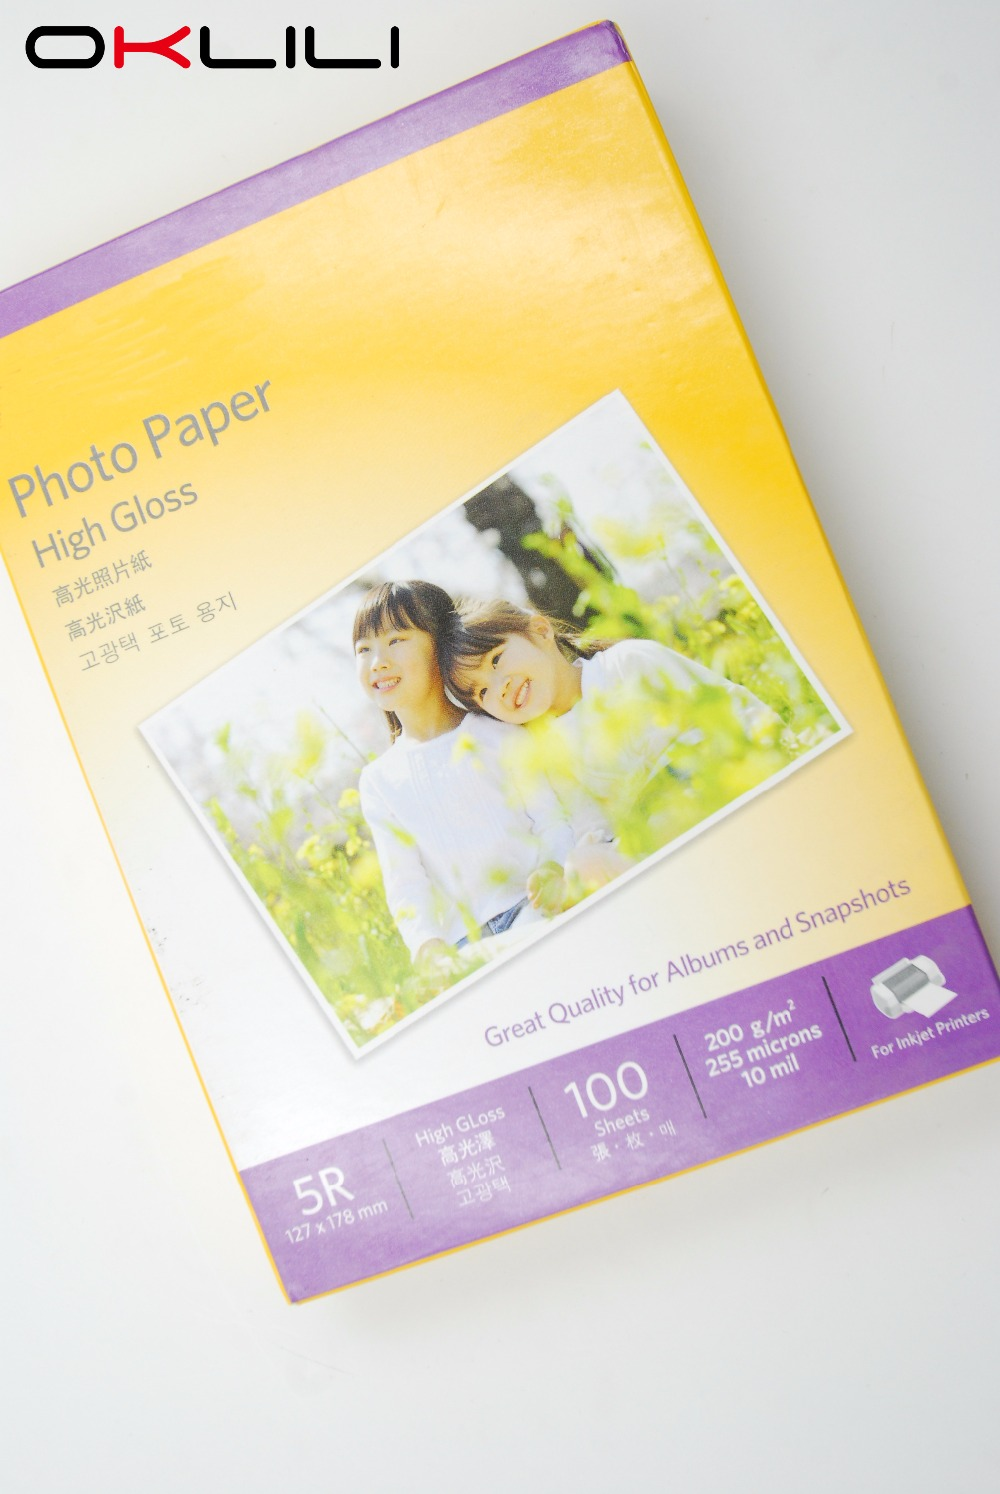 ORIGINAL NEW for Kodak 5R x 100 High Gloss glossy Photo Paper 127 x 178 mm 100 sheets 200g 255 microns 10 mil for Inkjet Printer